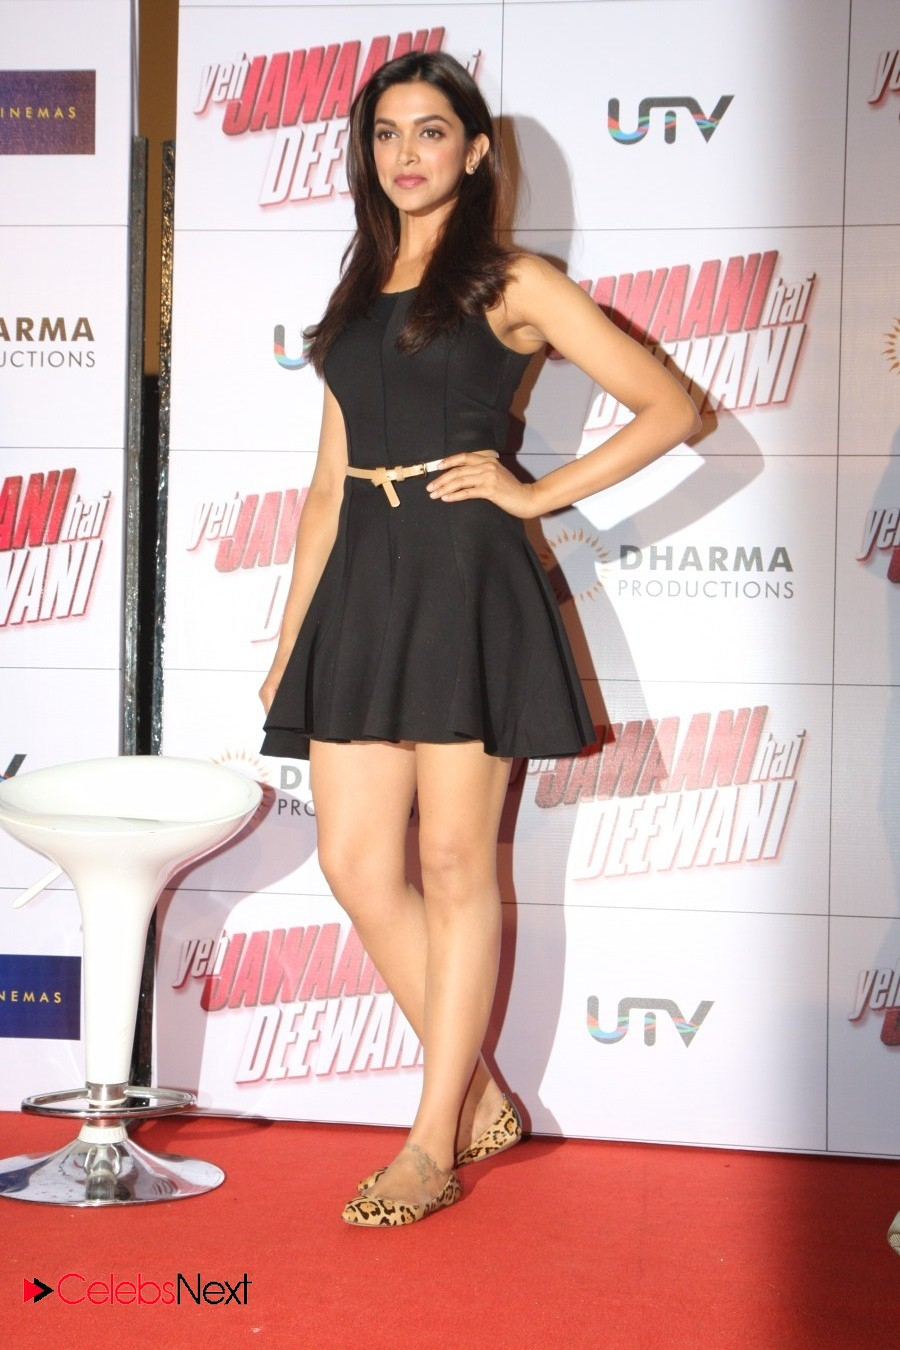 deepika_padukone_sexy_wallpapers3